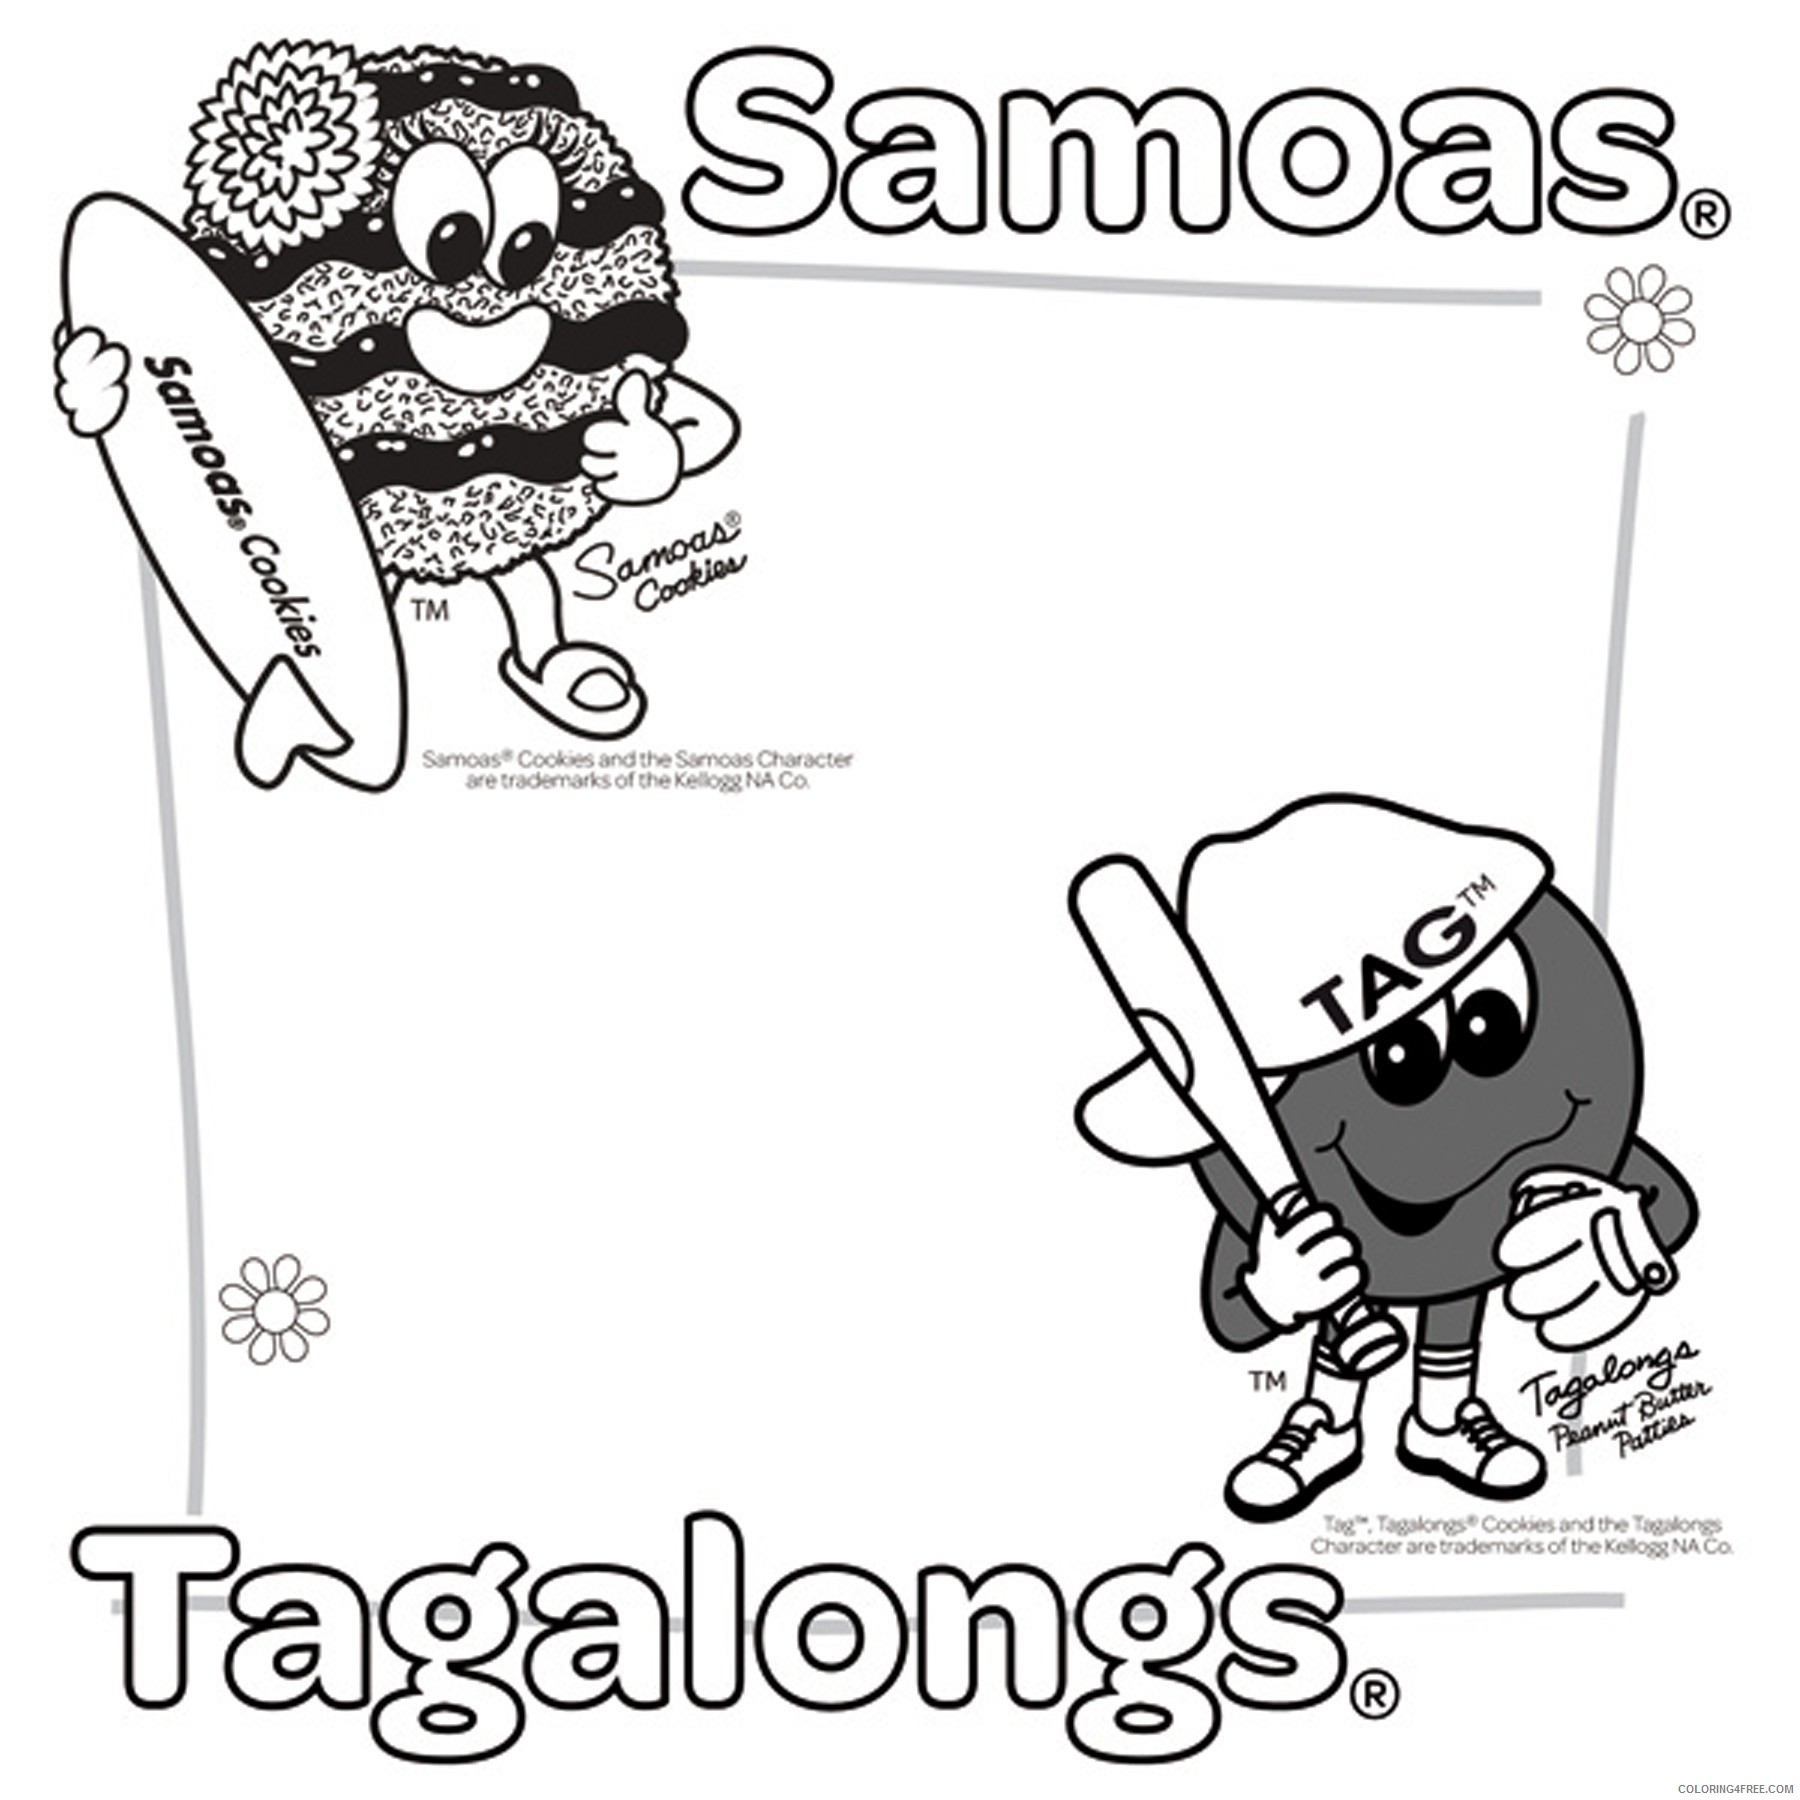 girl scout coloring pages samoas and tagalongs Coloring4free